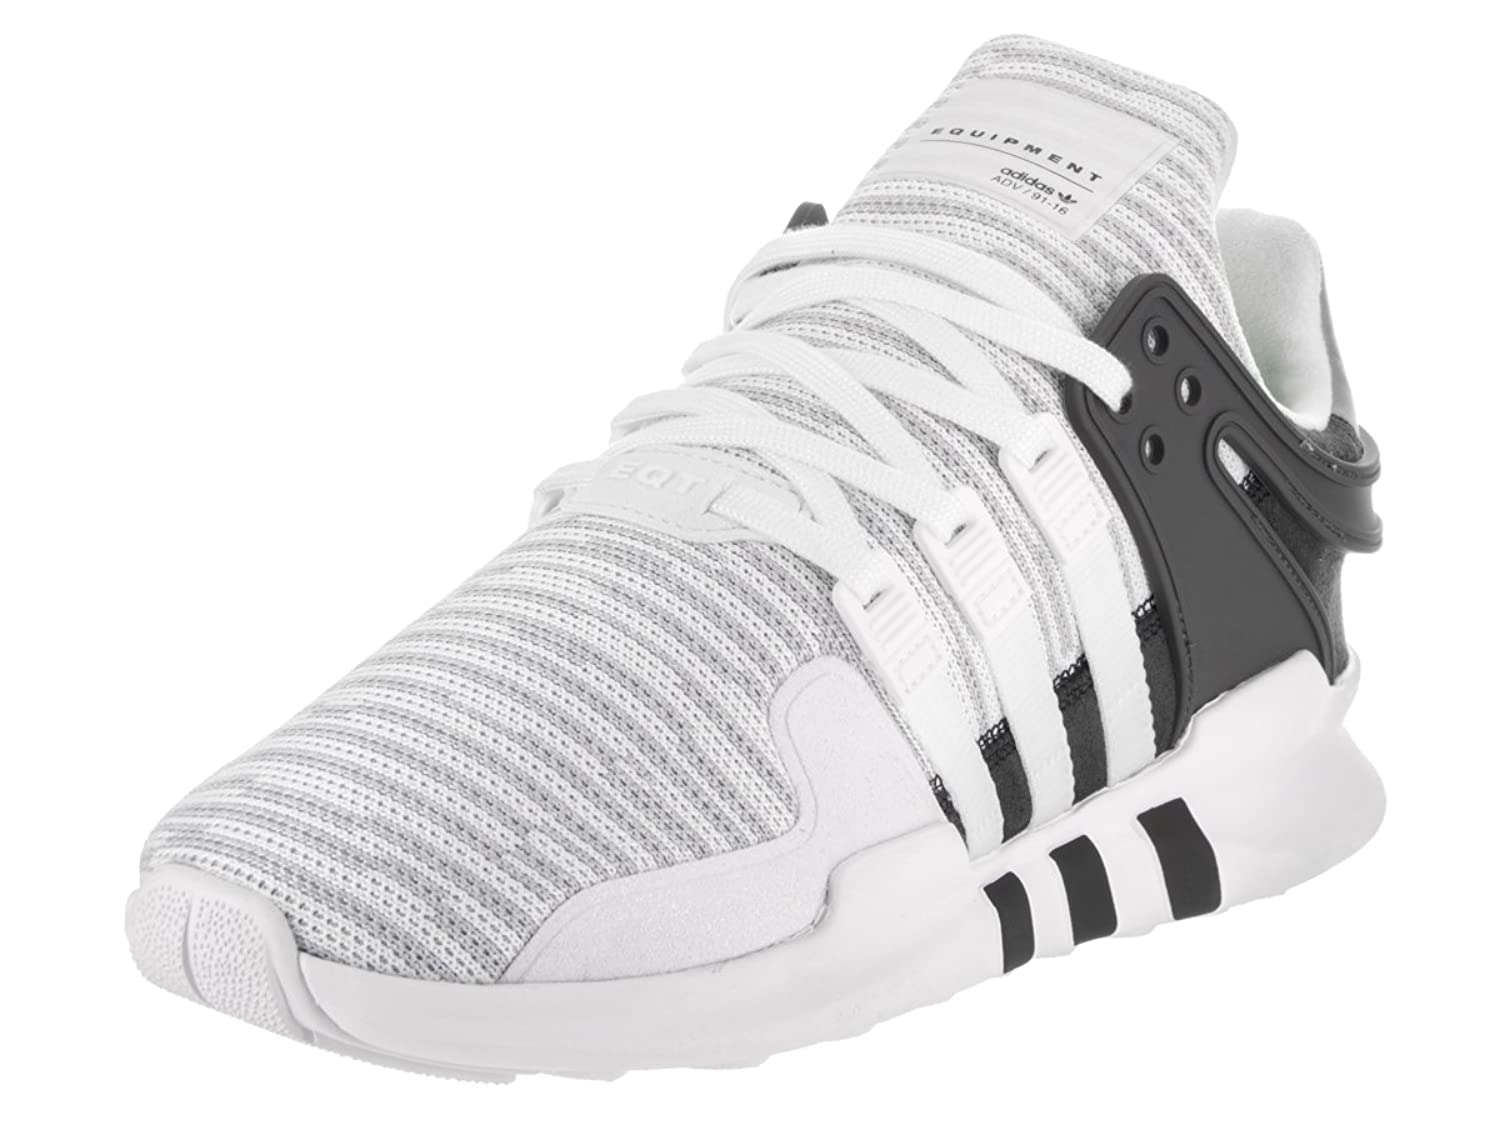 Adidas Equipment Support 93/16 (White/Black) Rock City Kicks